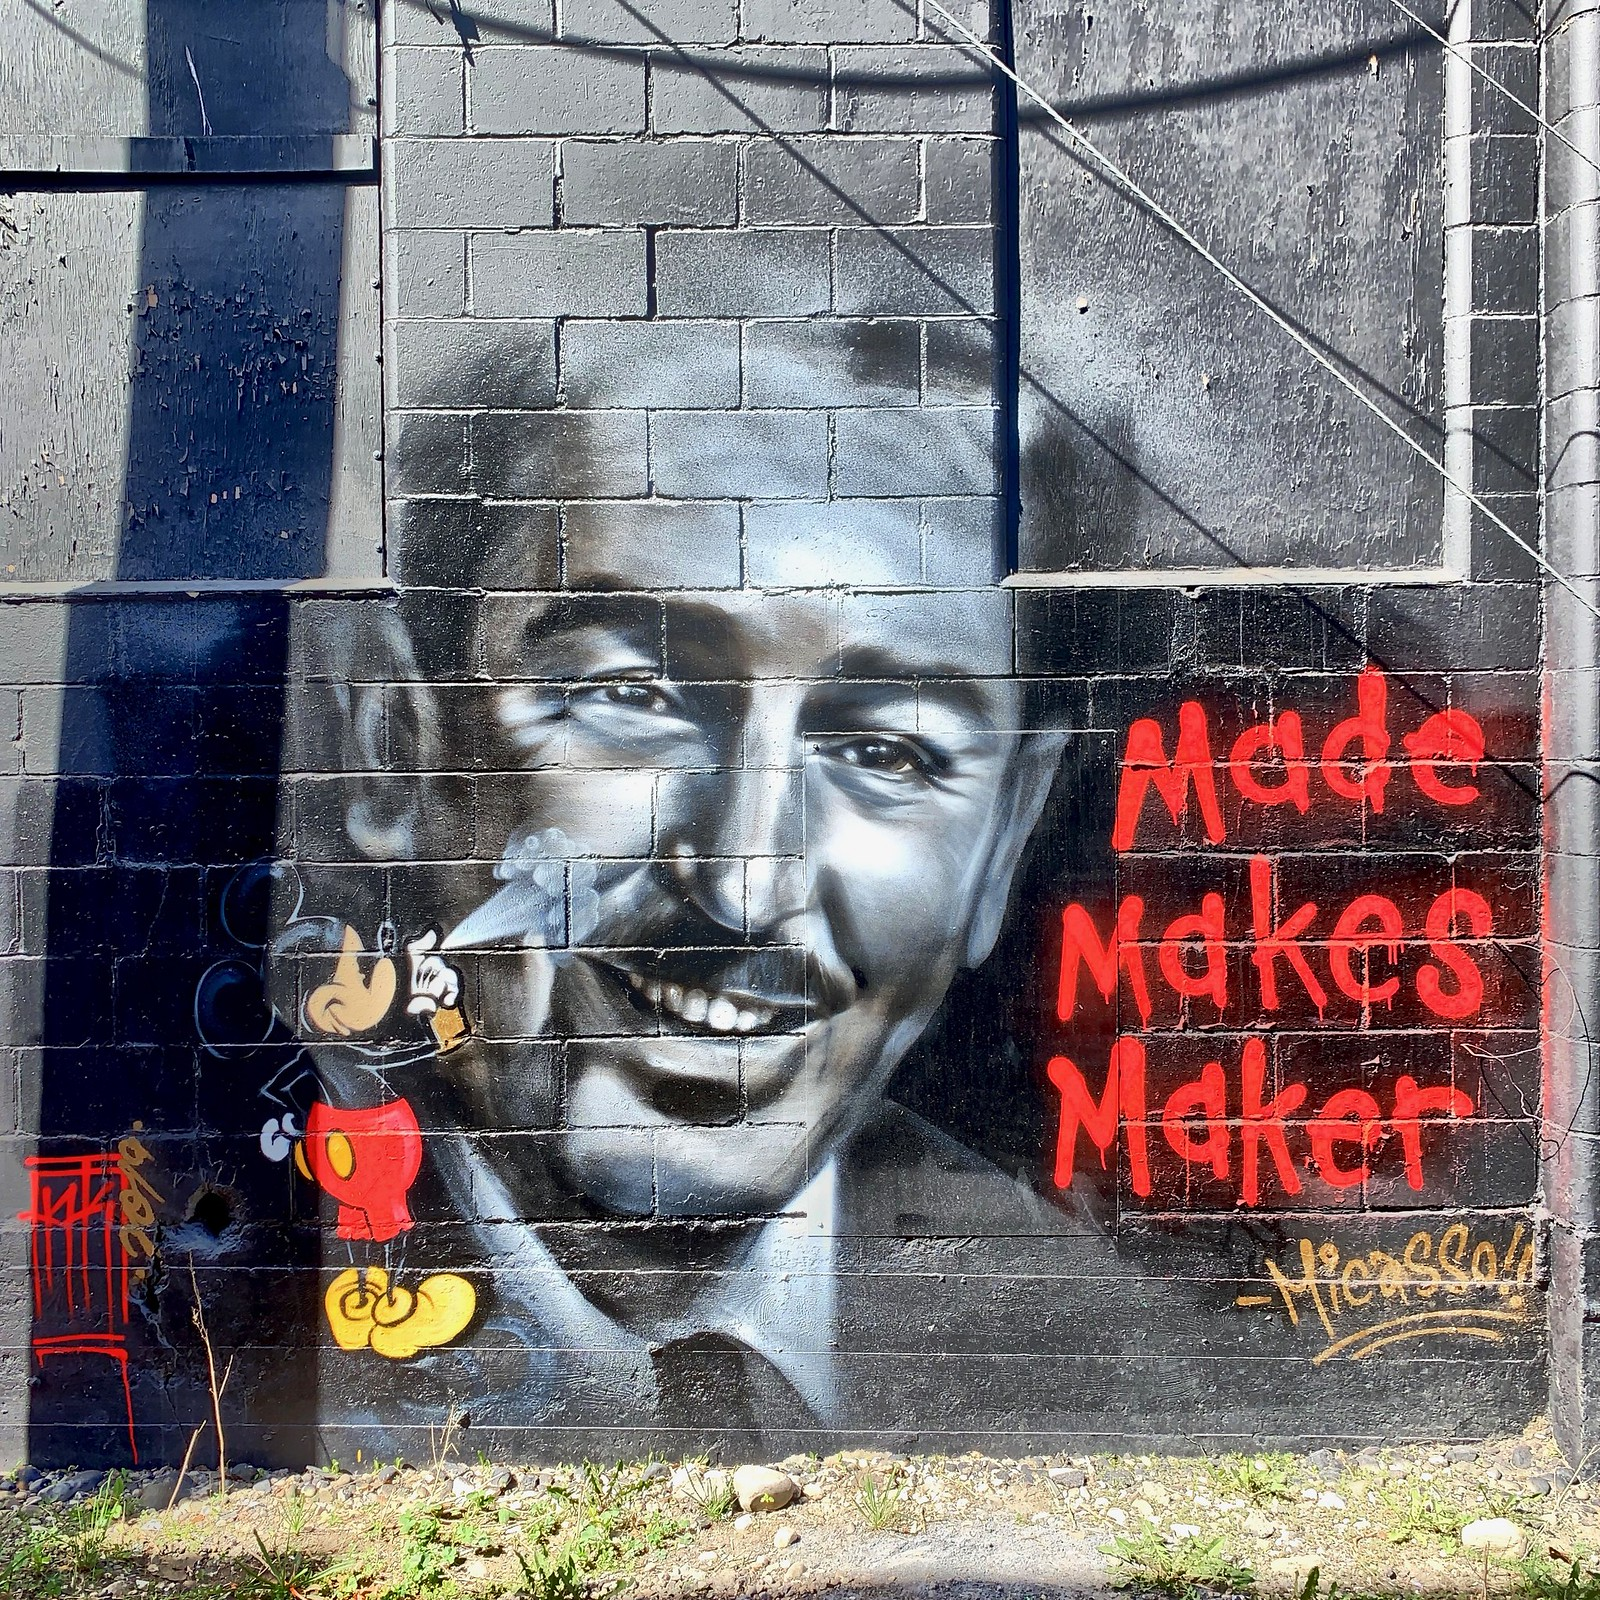 Made Makes Maker by Micasso